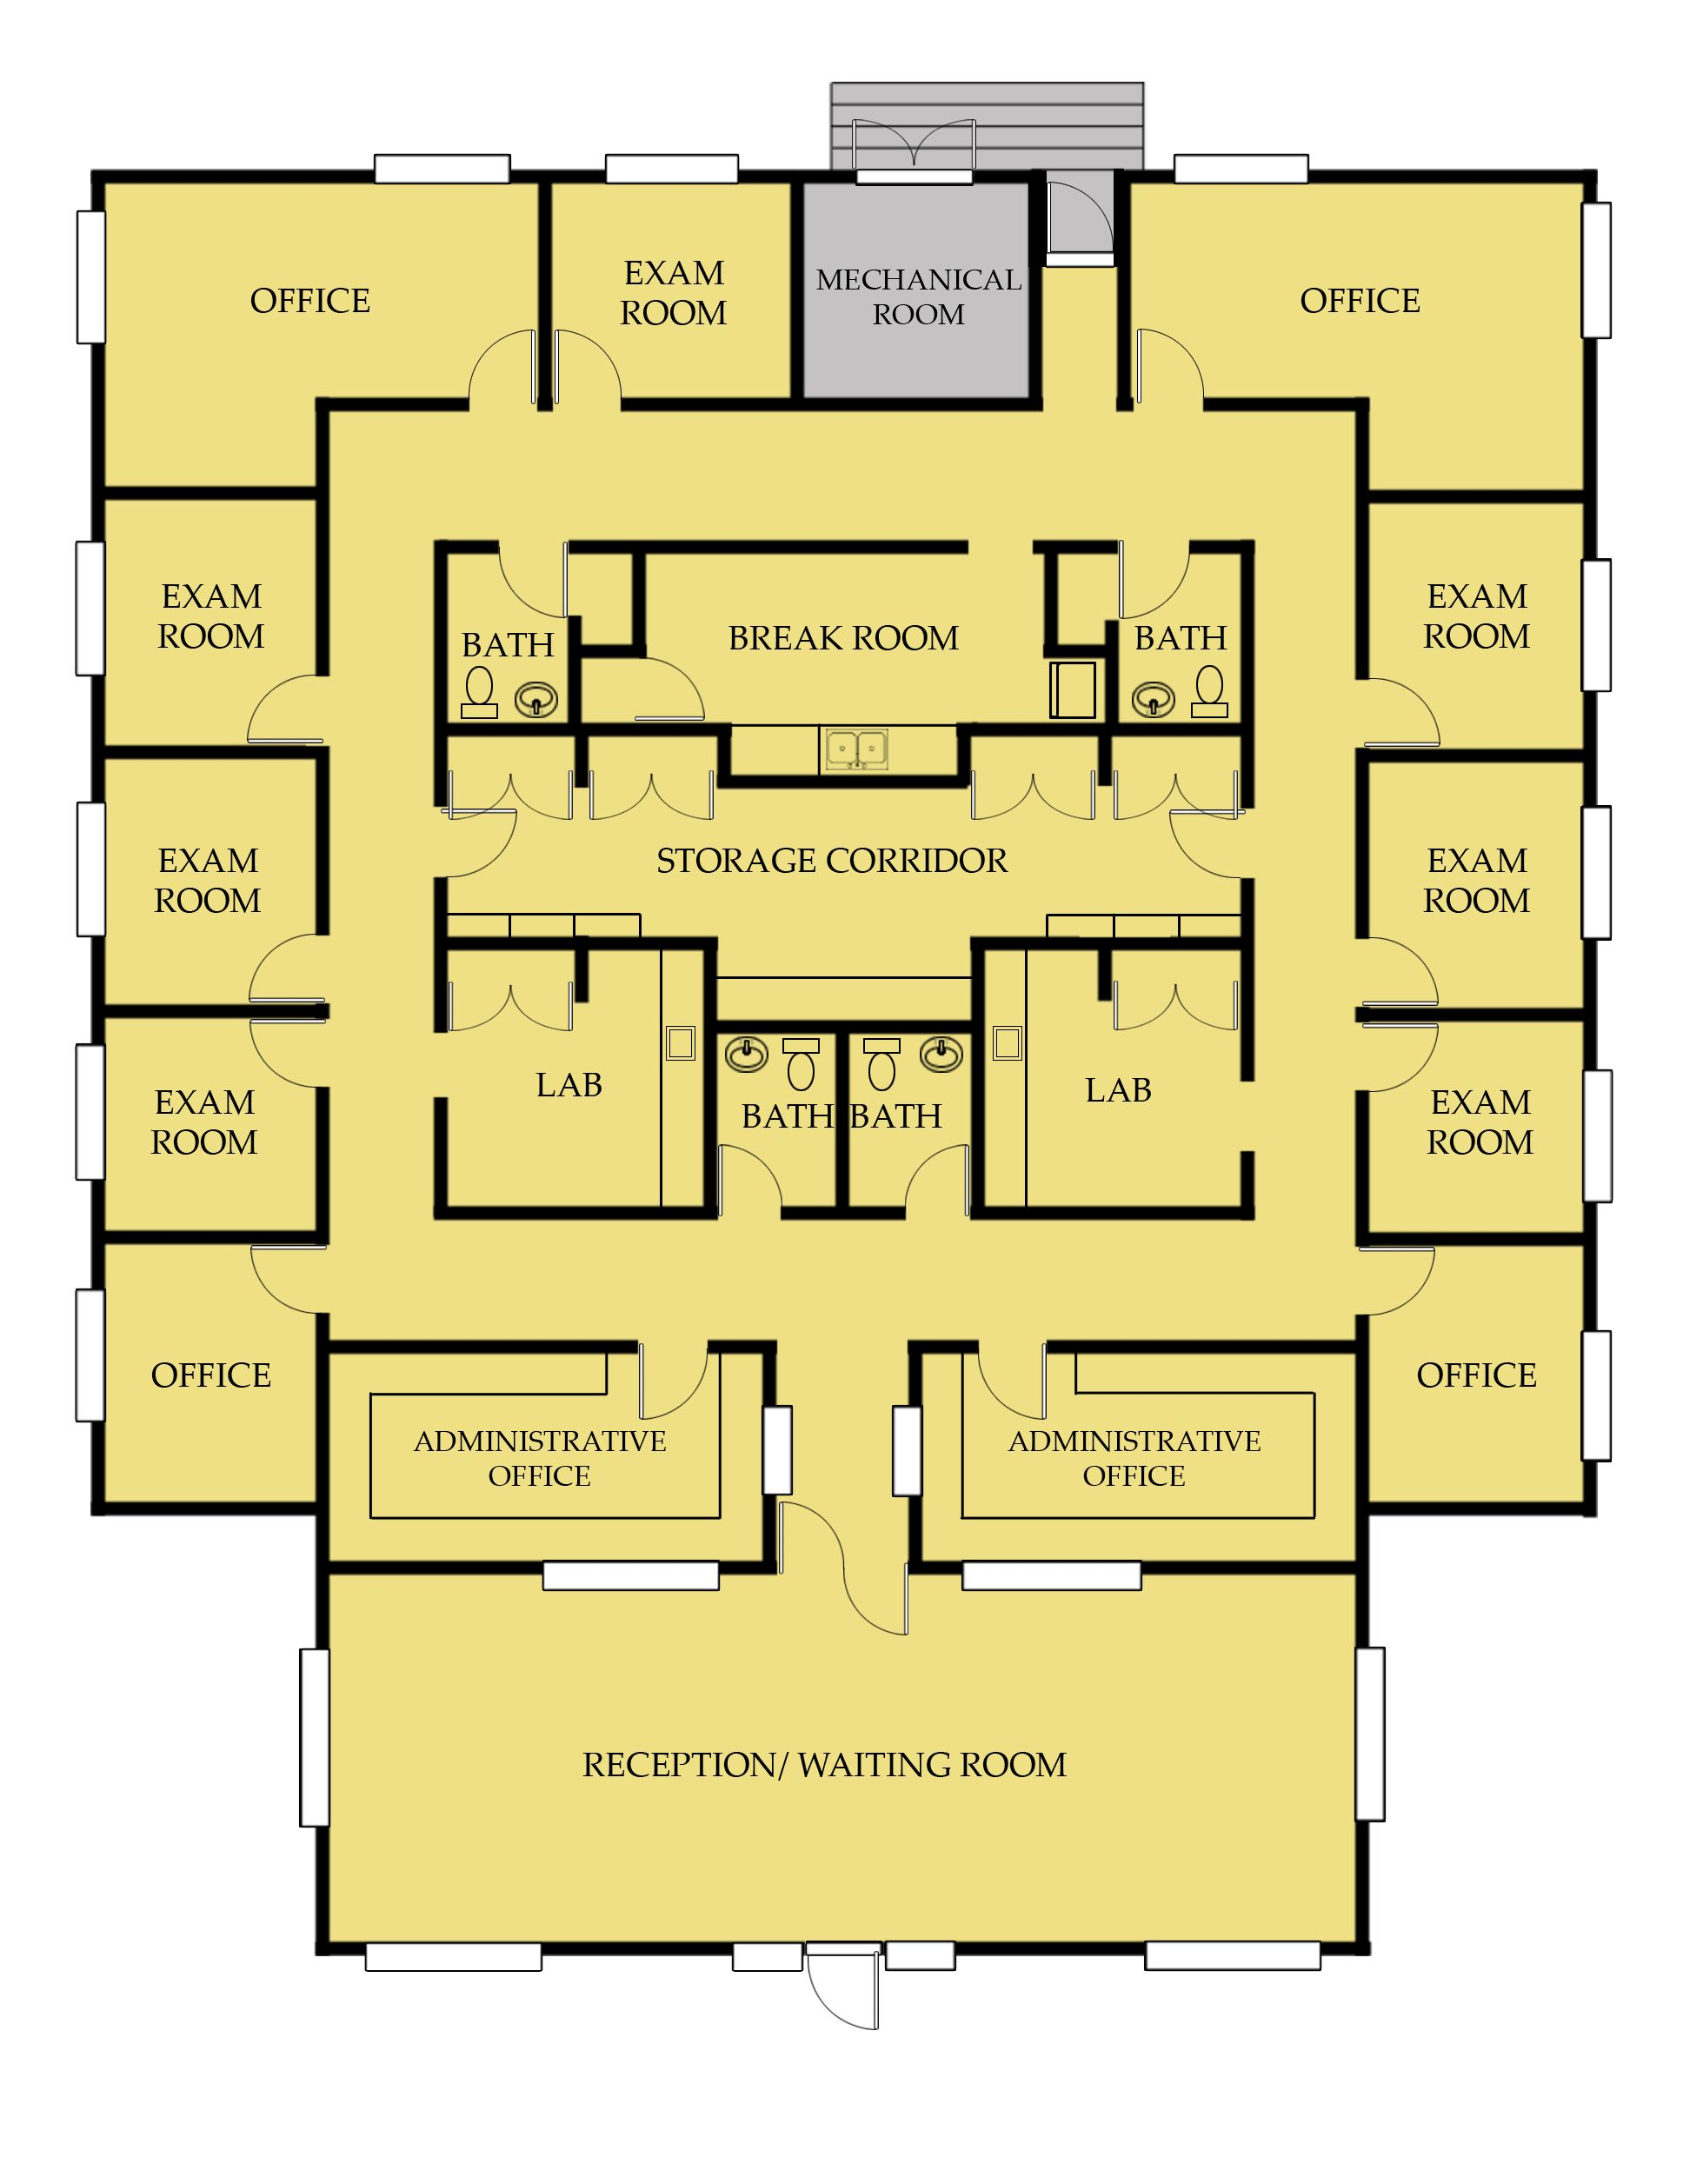 Medical office building floor plans medical pinterest for Two story office building plans